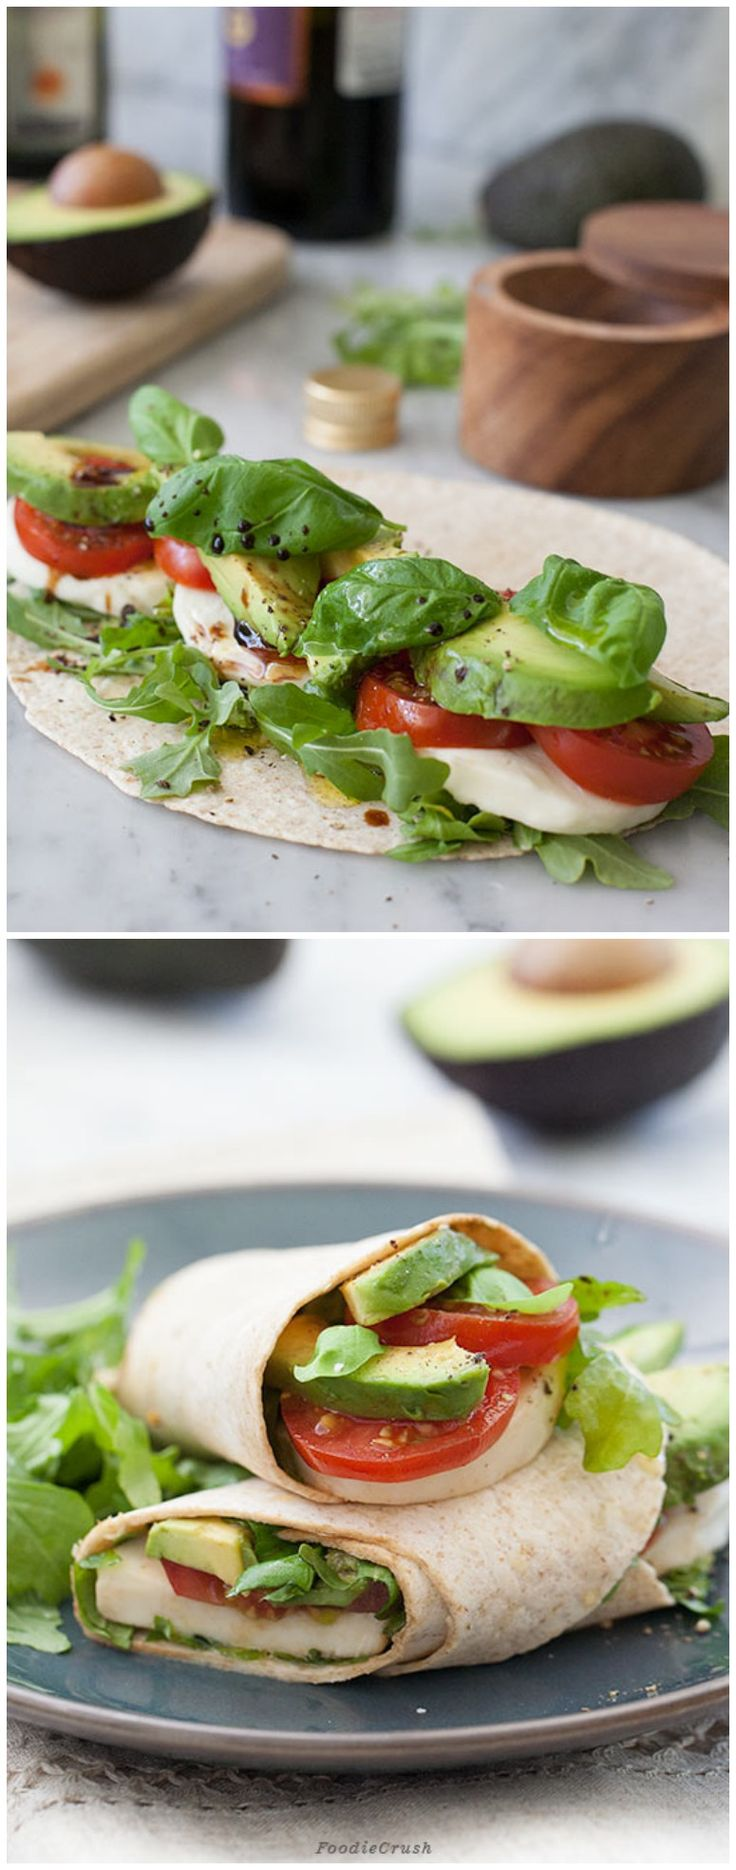 Avocado Caprese Wrap with Arugula and Balsamic #recipe on foodiecrush.com